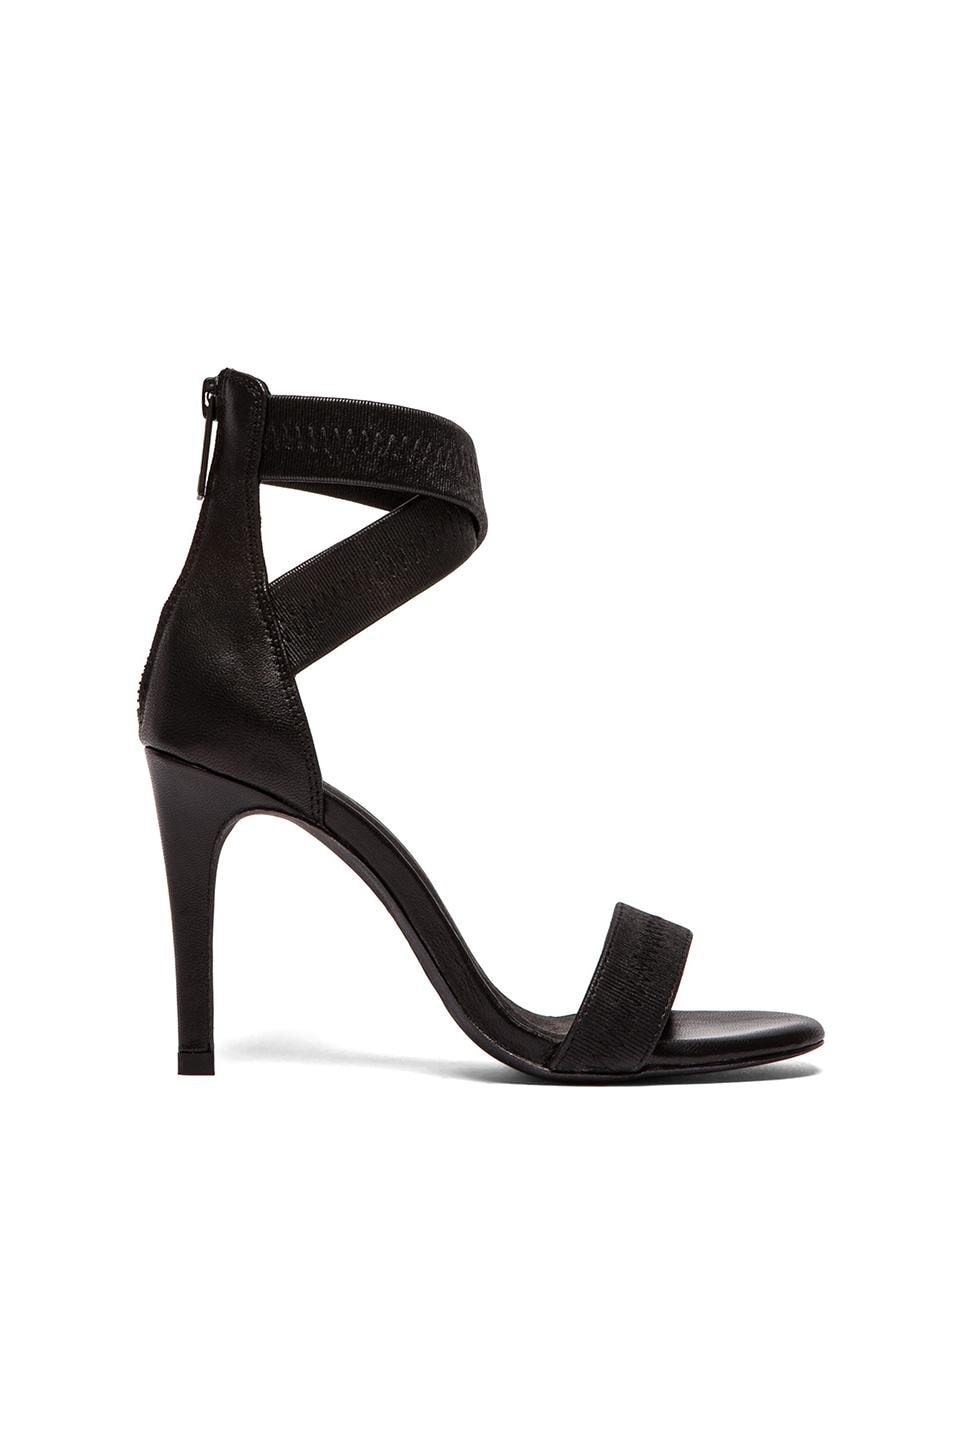 Joie Elaine Heel in Black